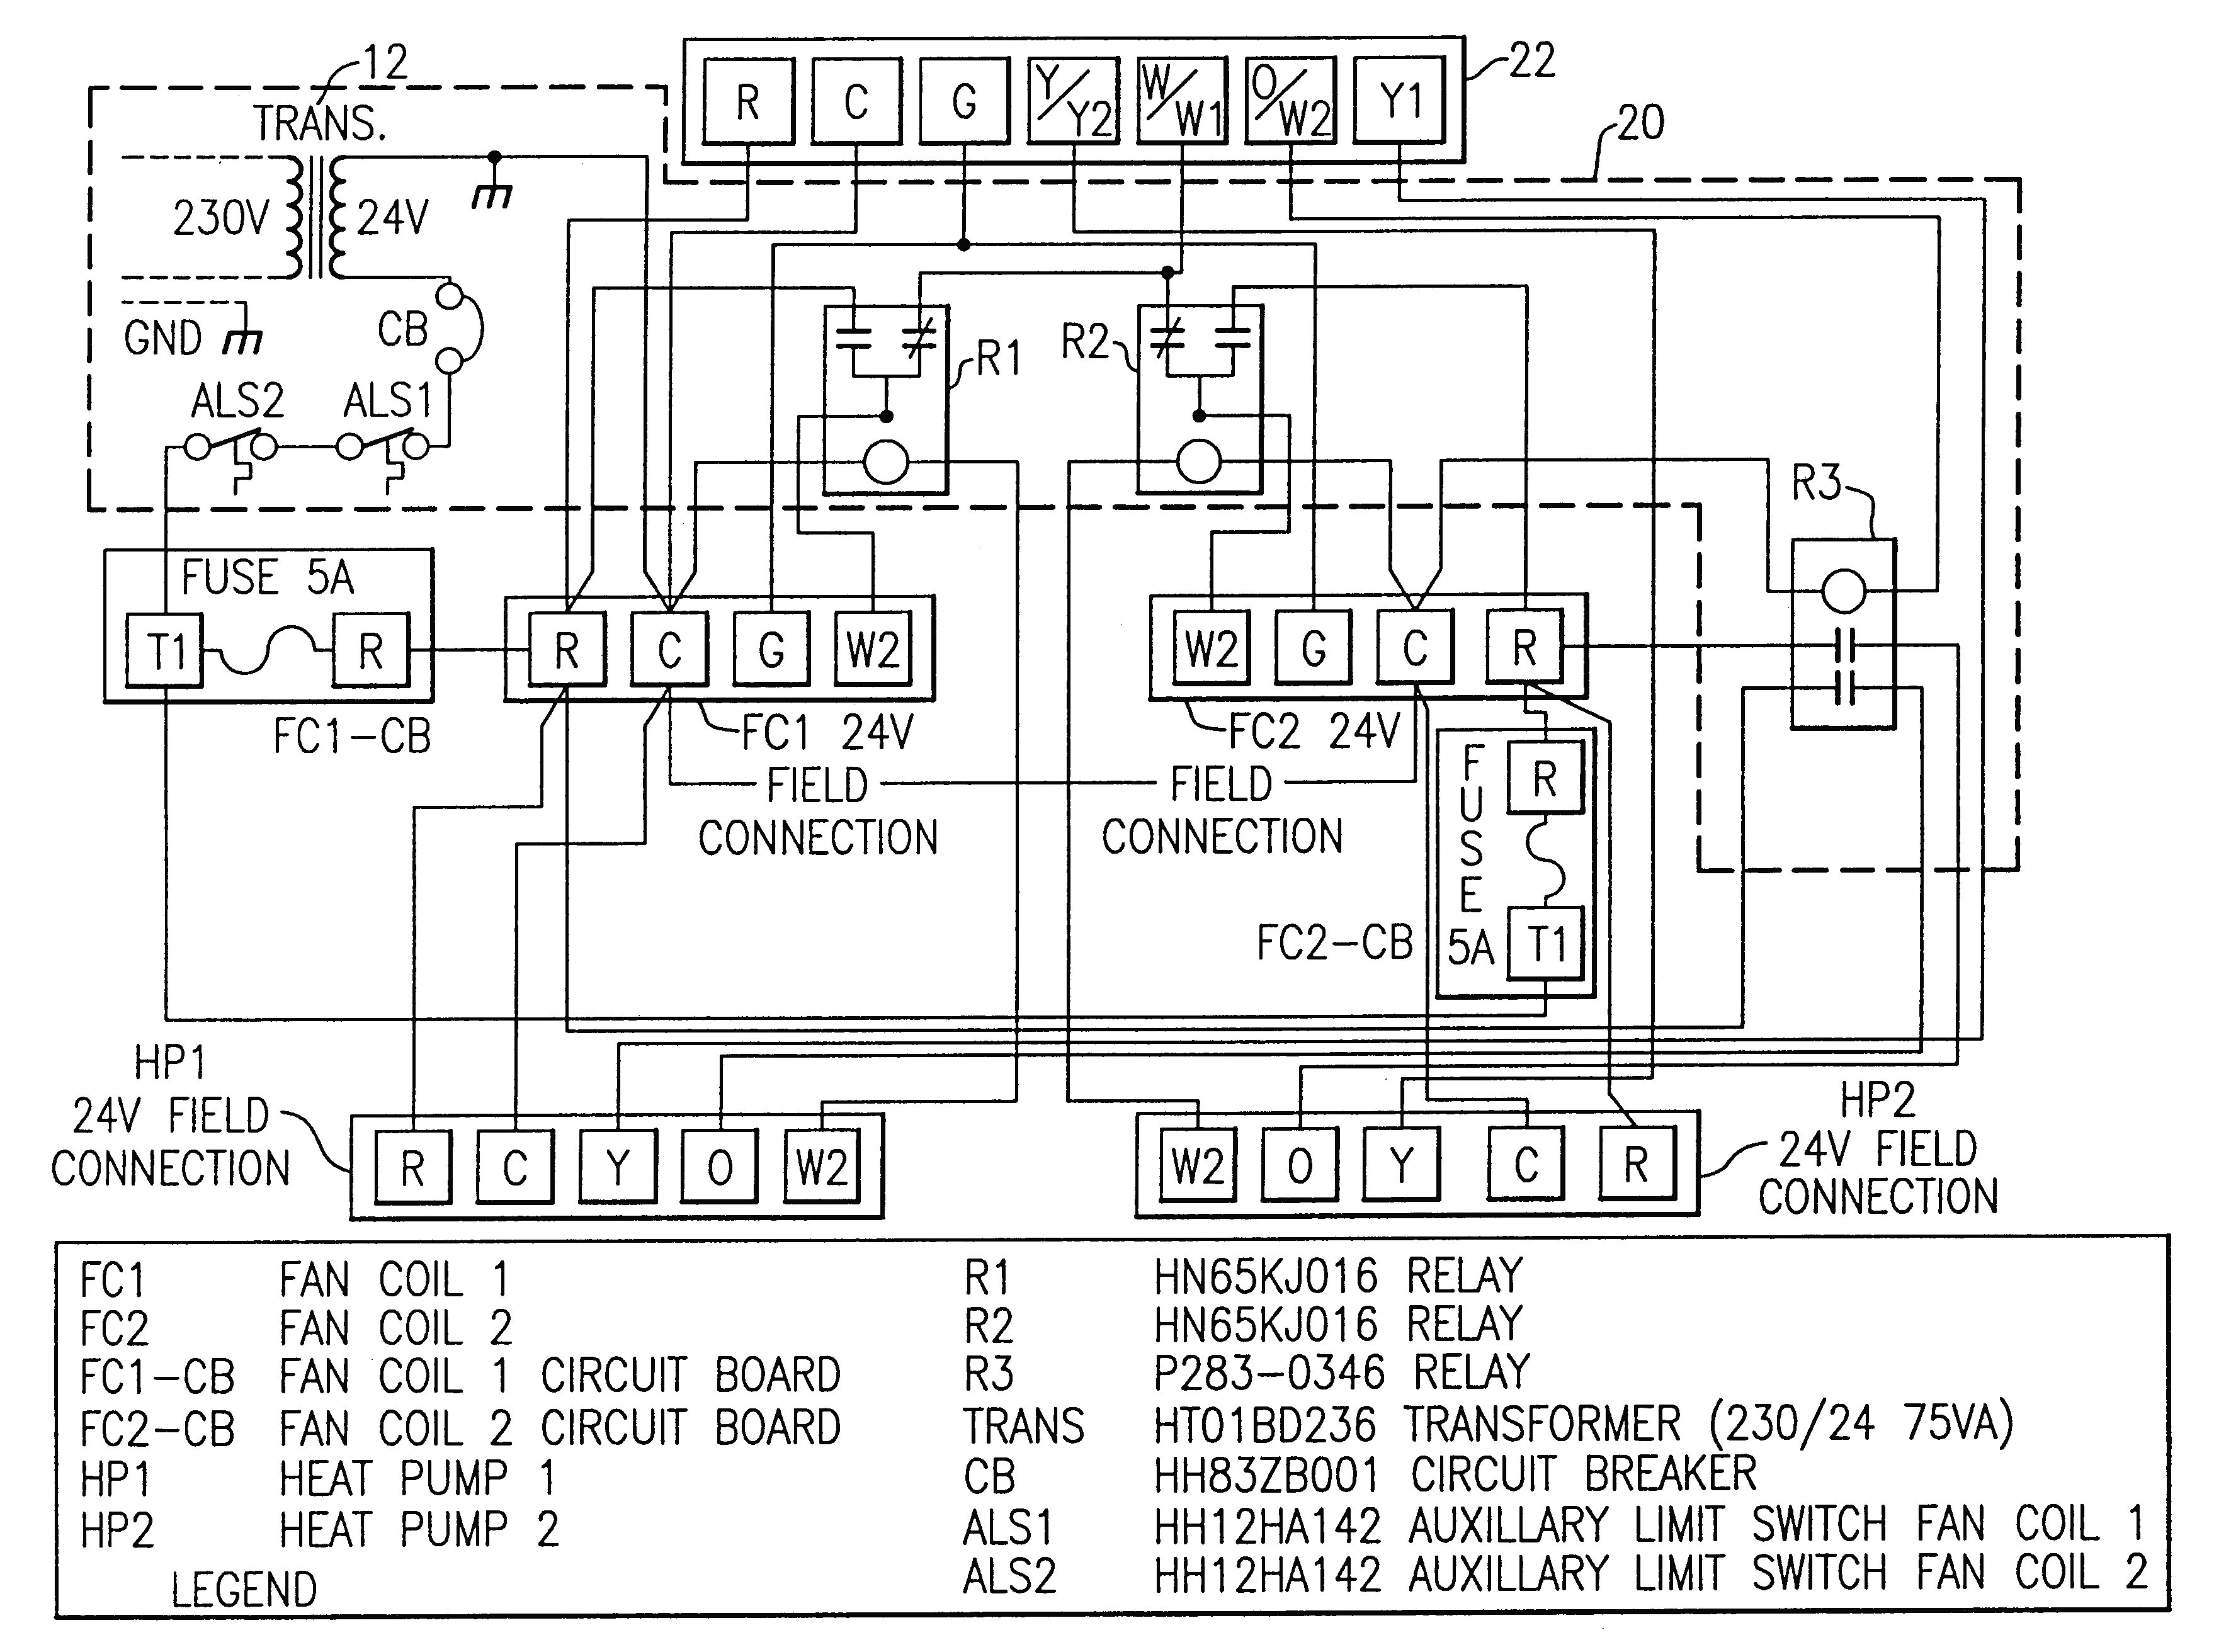 Arcoaire Air Conditioning and Heating | AdinaPorter on smoke detectors schematic, furnace fan schematic, furnace diagrams, furnace exhaust schematic, furnace motor schematic,